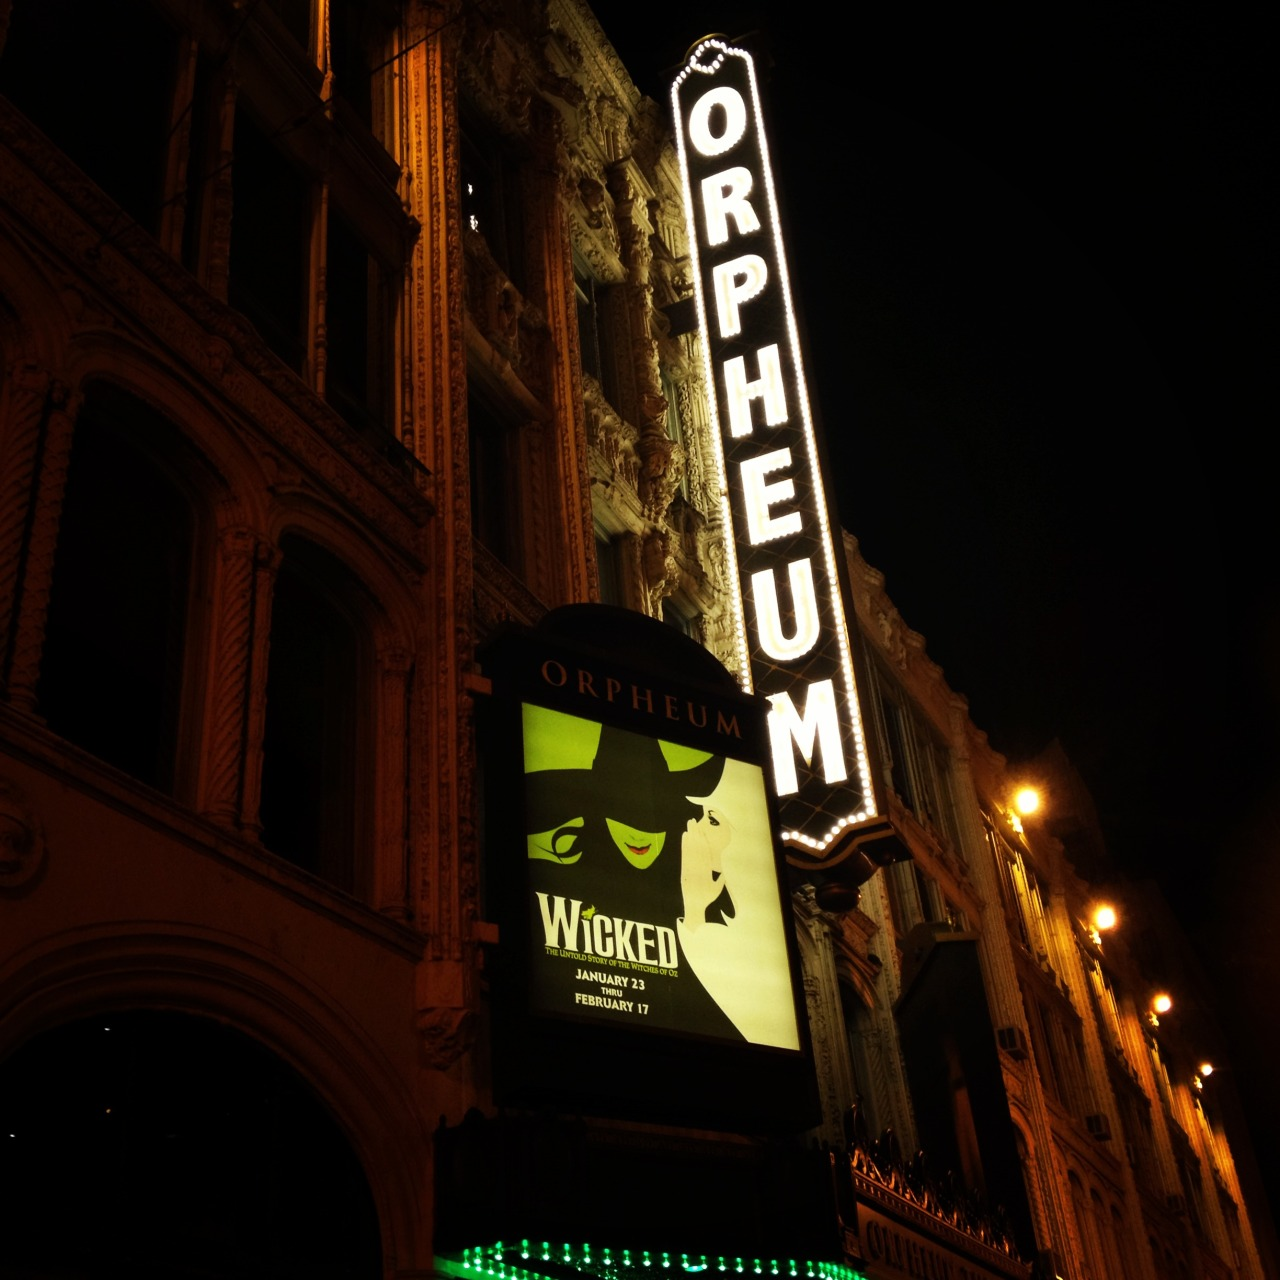 Wicked! [Taken 2/15/13 at Orpheum Theater in San Francisco, CA using iPhone 4S]